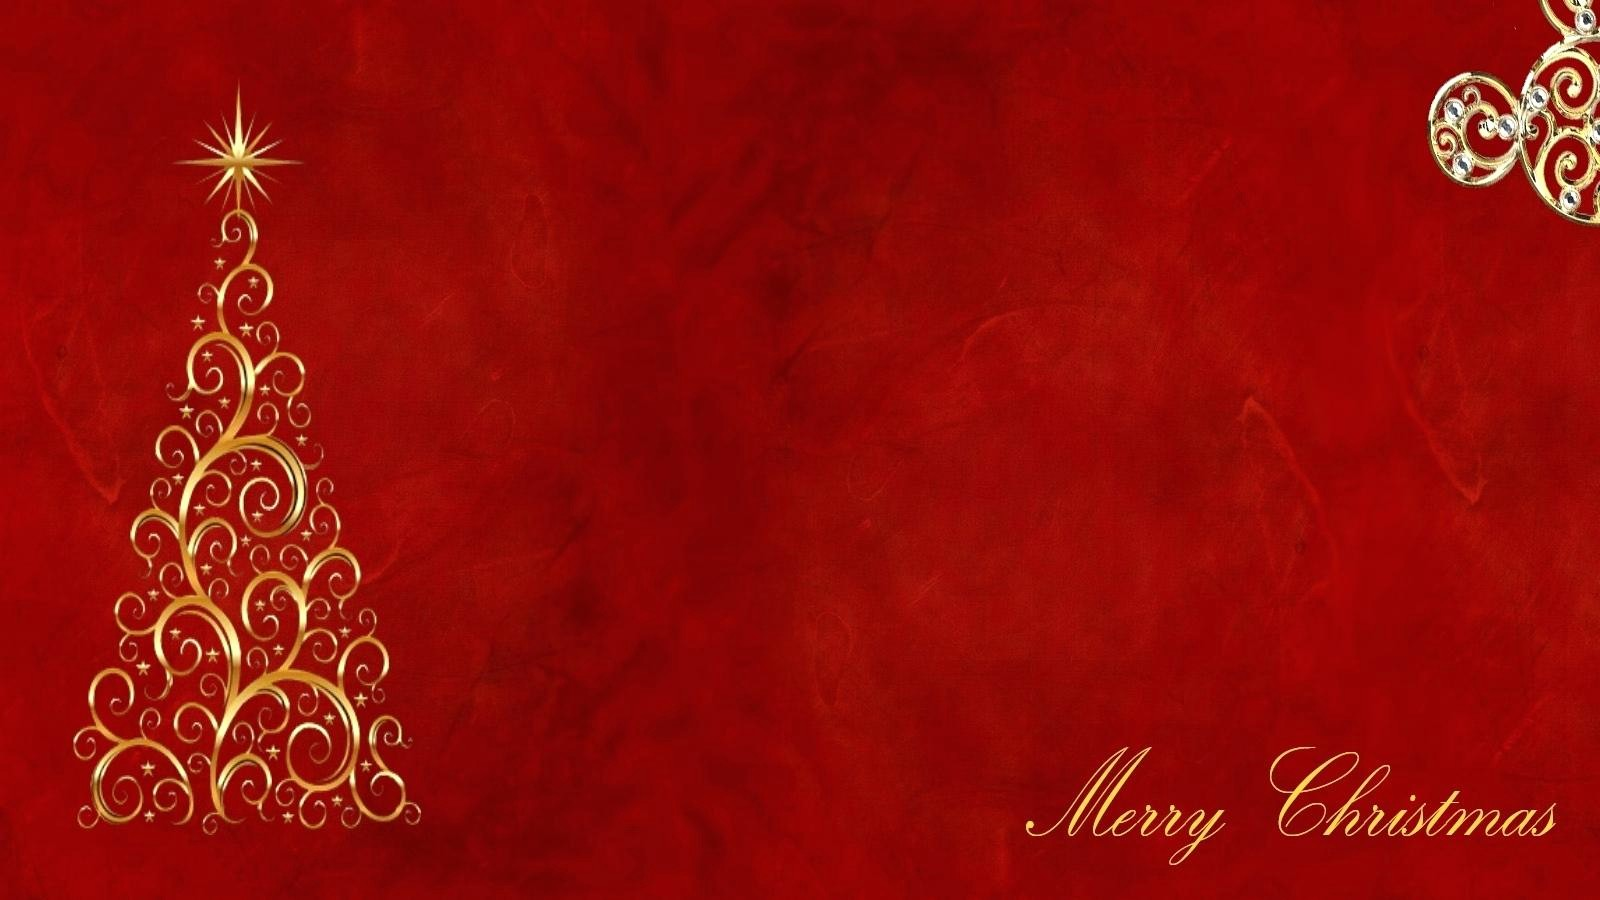 Christmas Background Images for Word Luxury Template Christmas Background Template